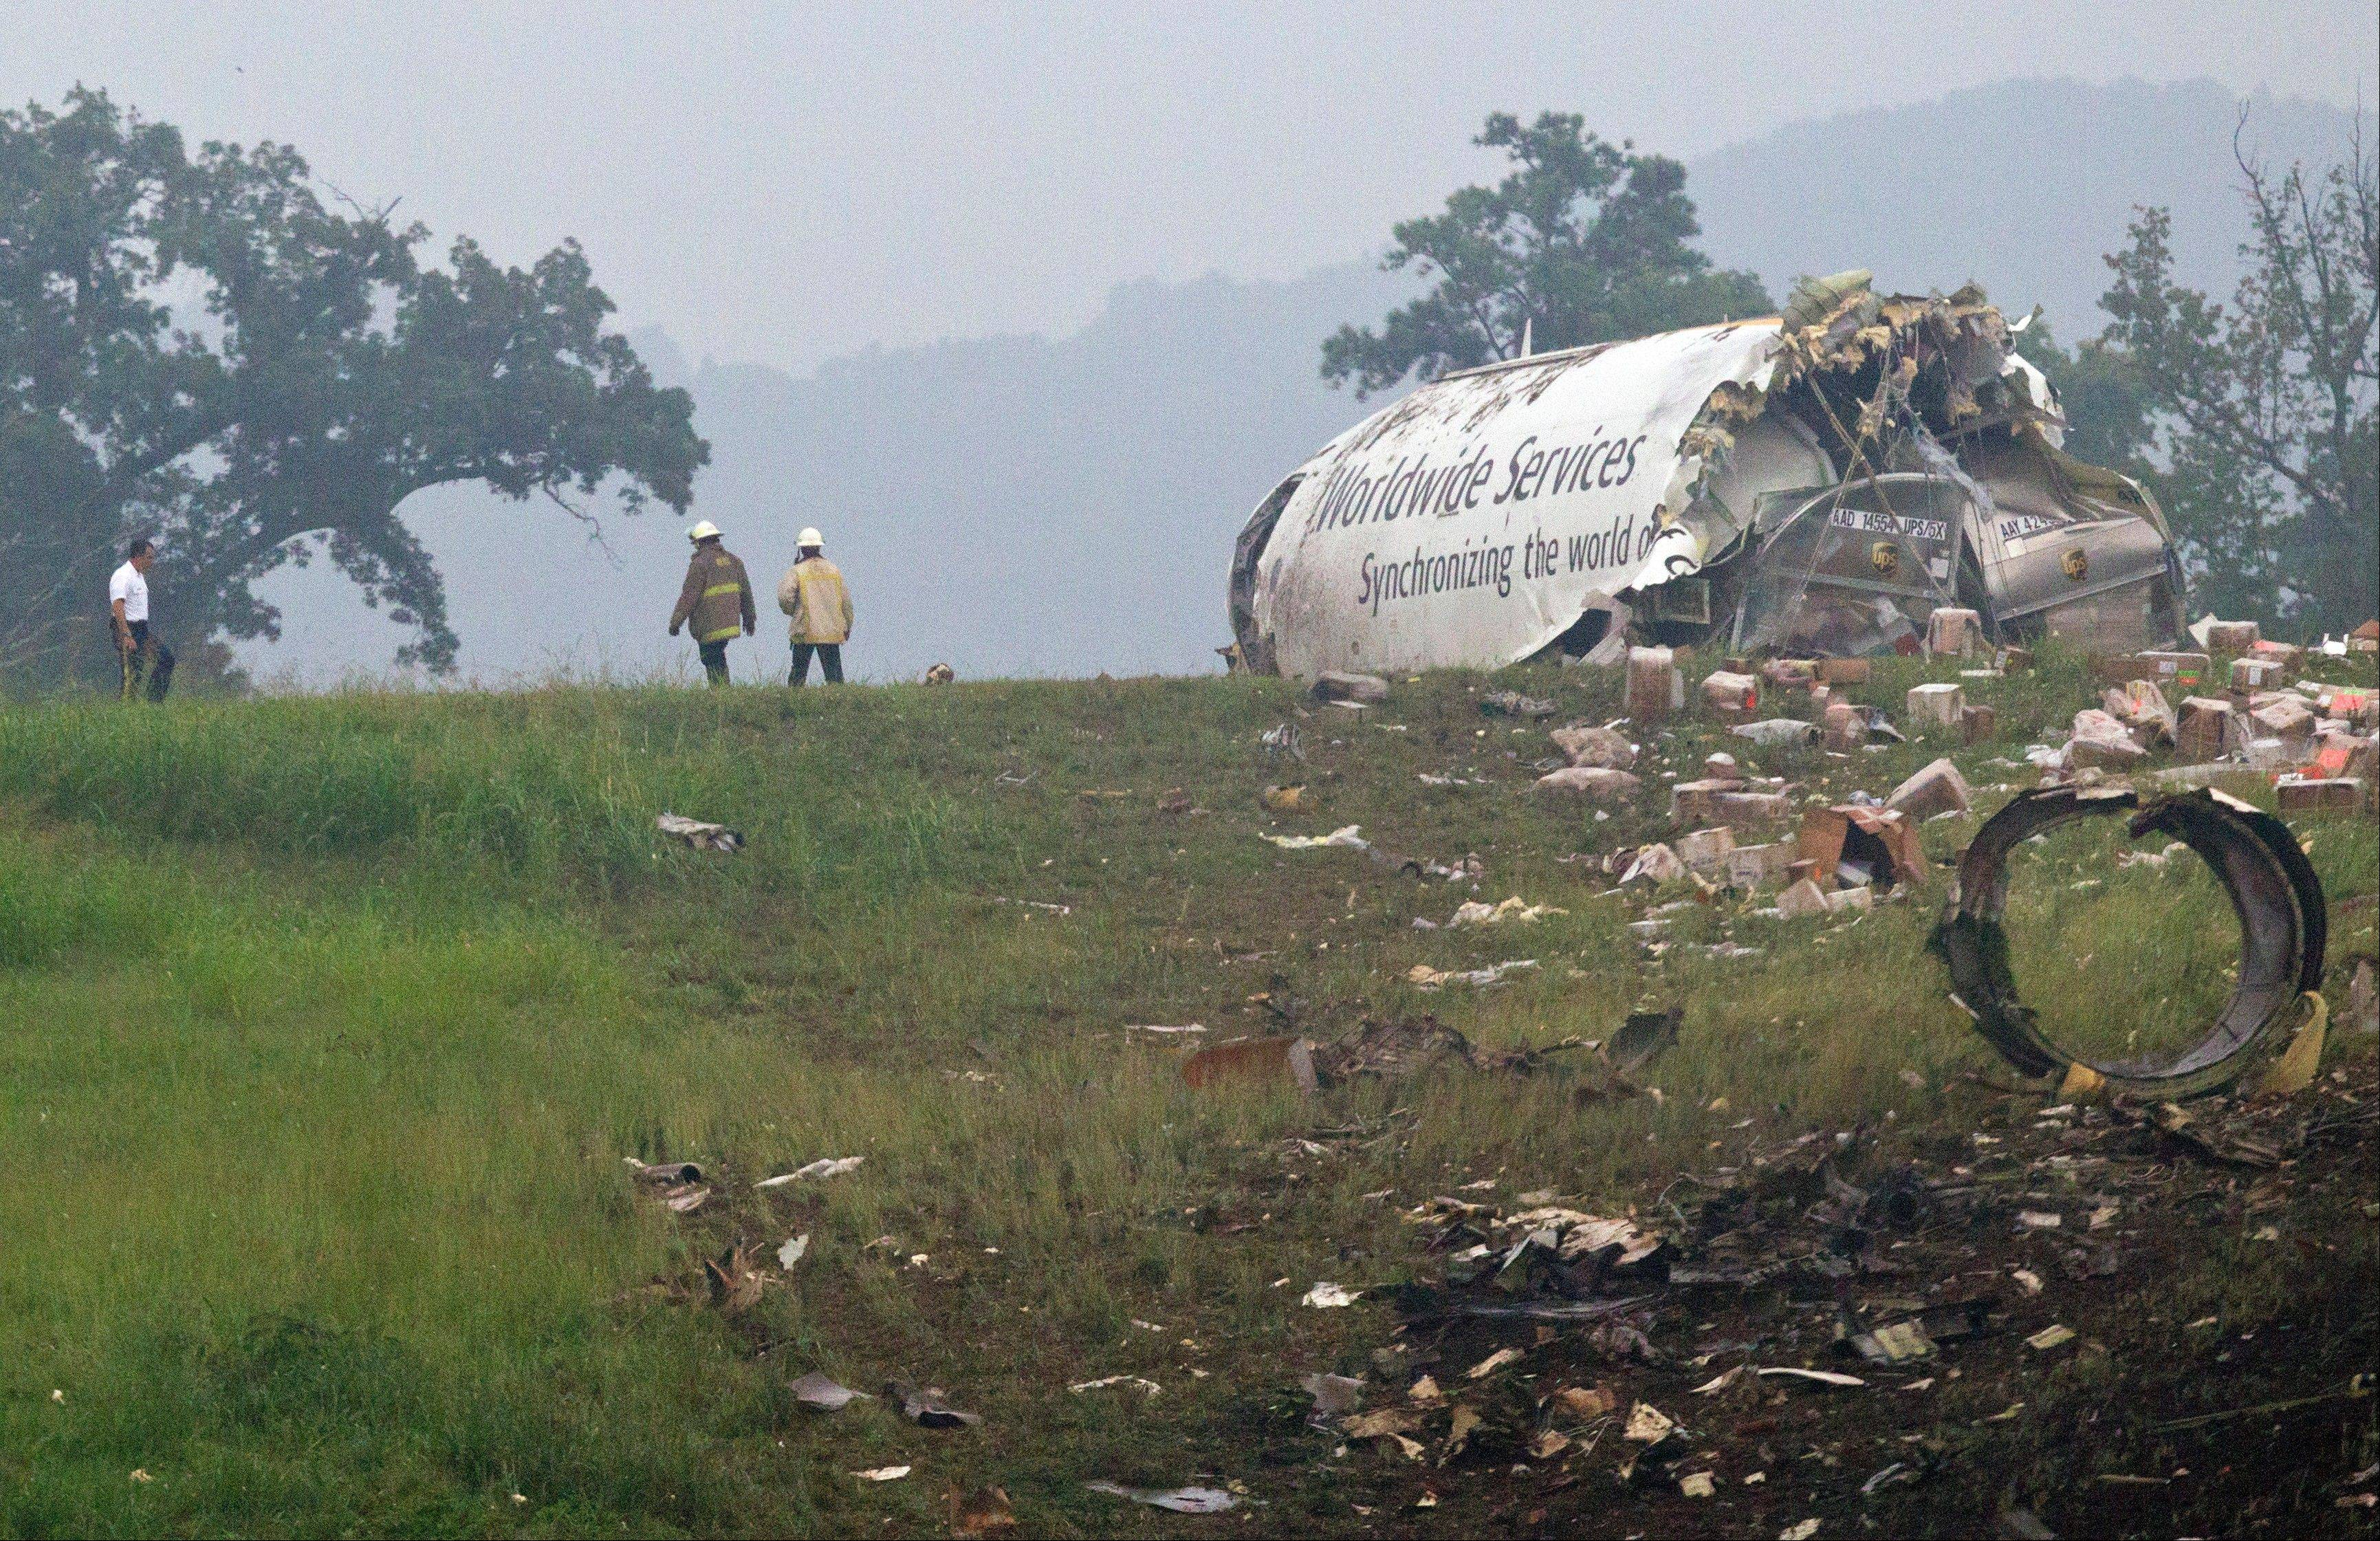 Fire crews investigate after a UPS cargo plane crashed on approach Wednesday in Birmingham, Ala. Fire officials say the pilot and co-pilot were both killed.